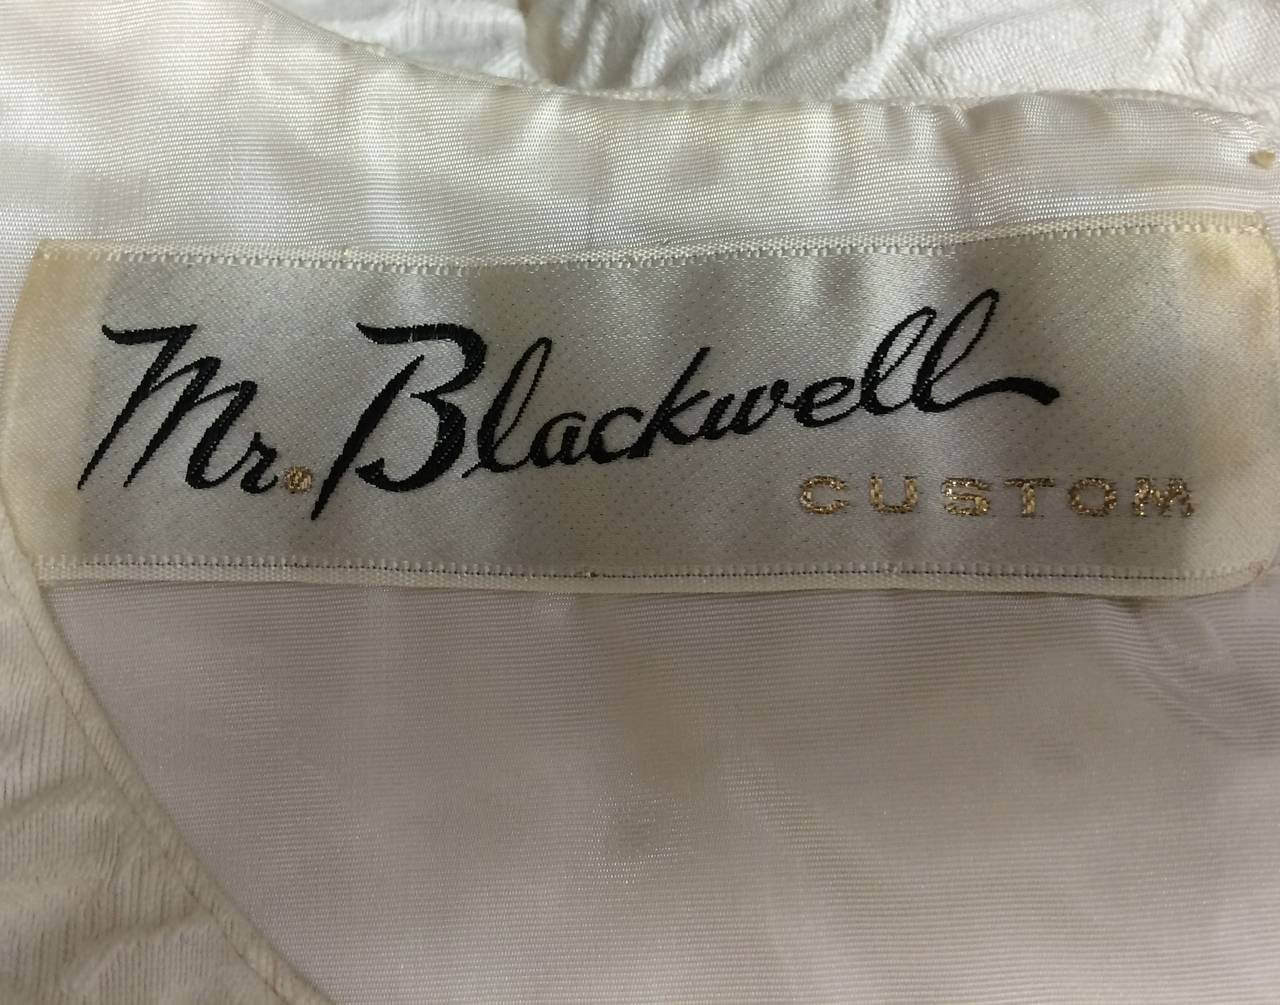 1960s Mr. Blackwell Ivory Textured Dress with Cape For Sale 4